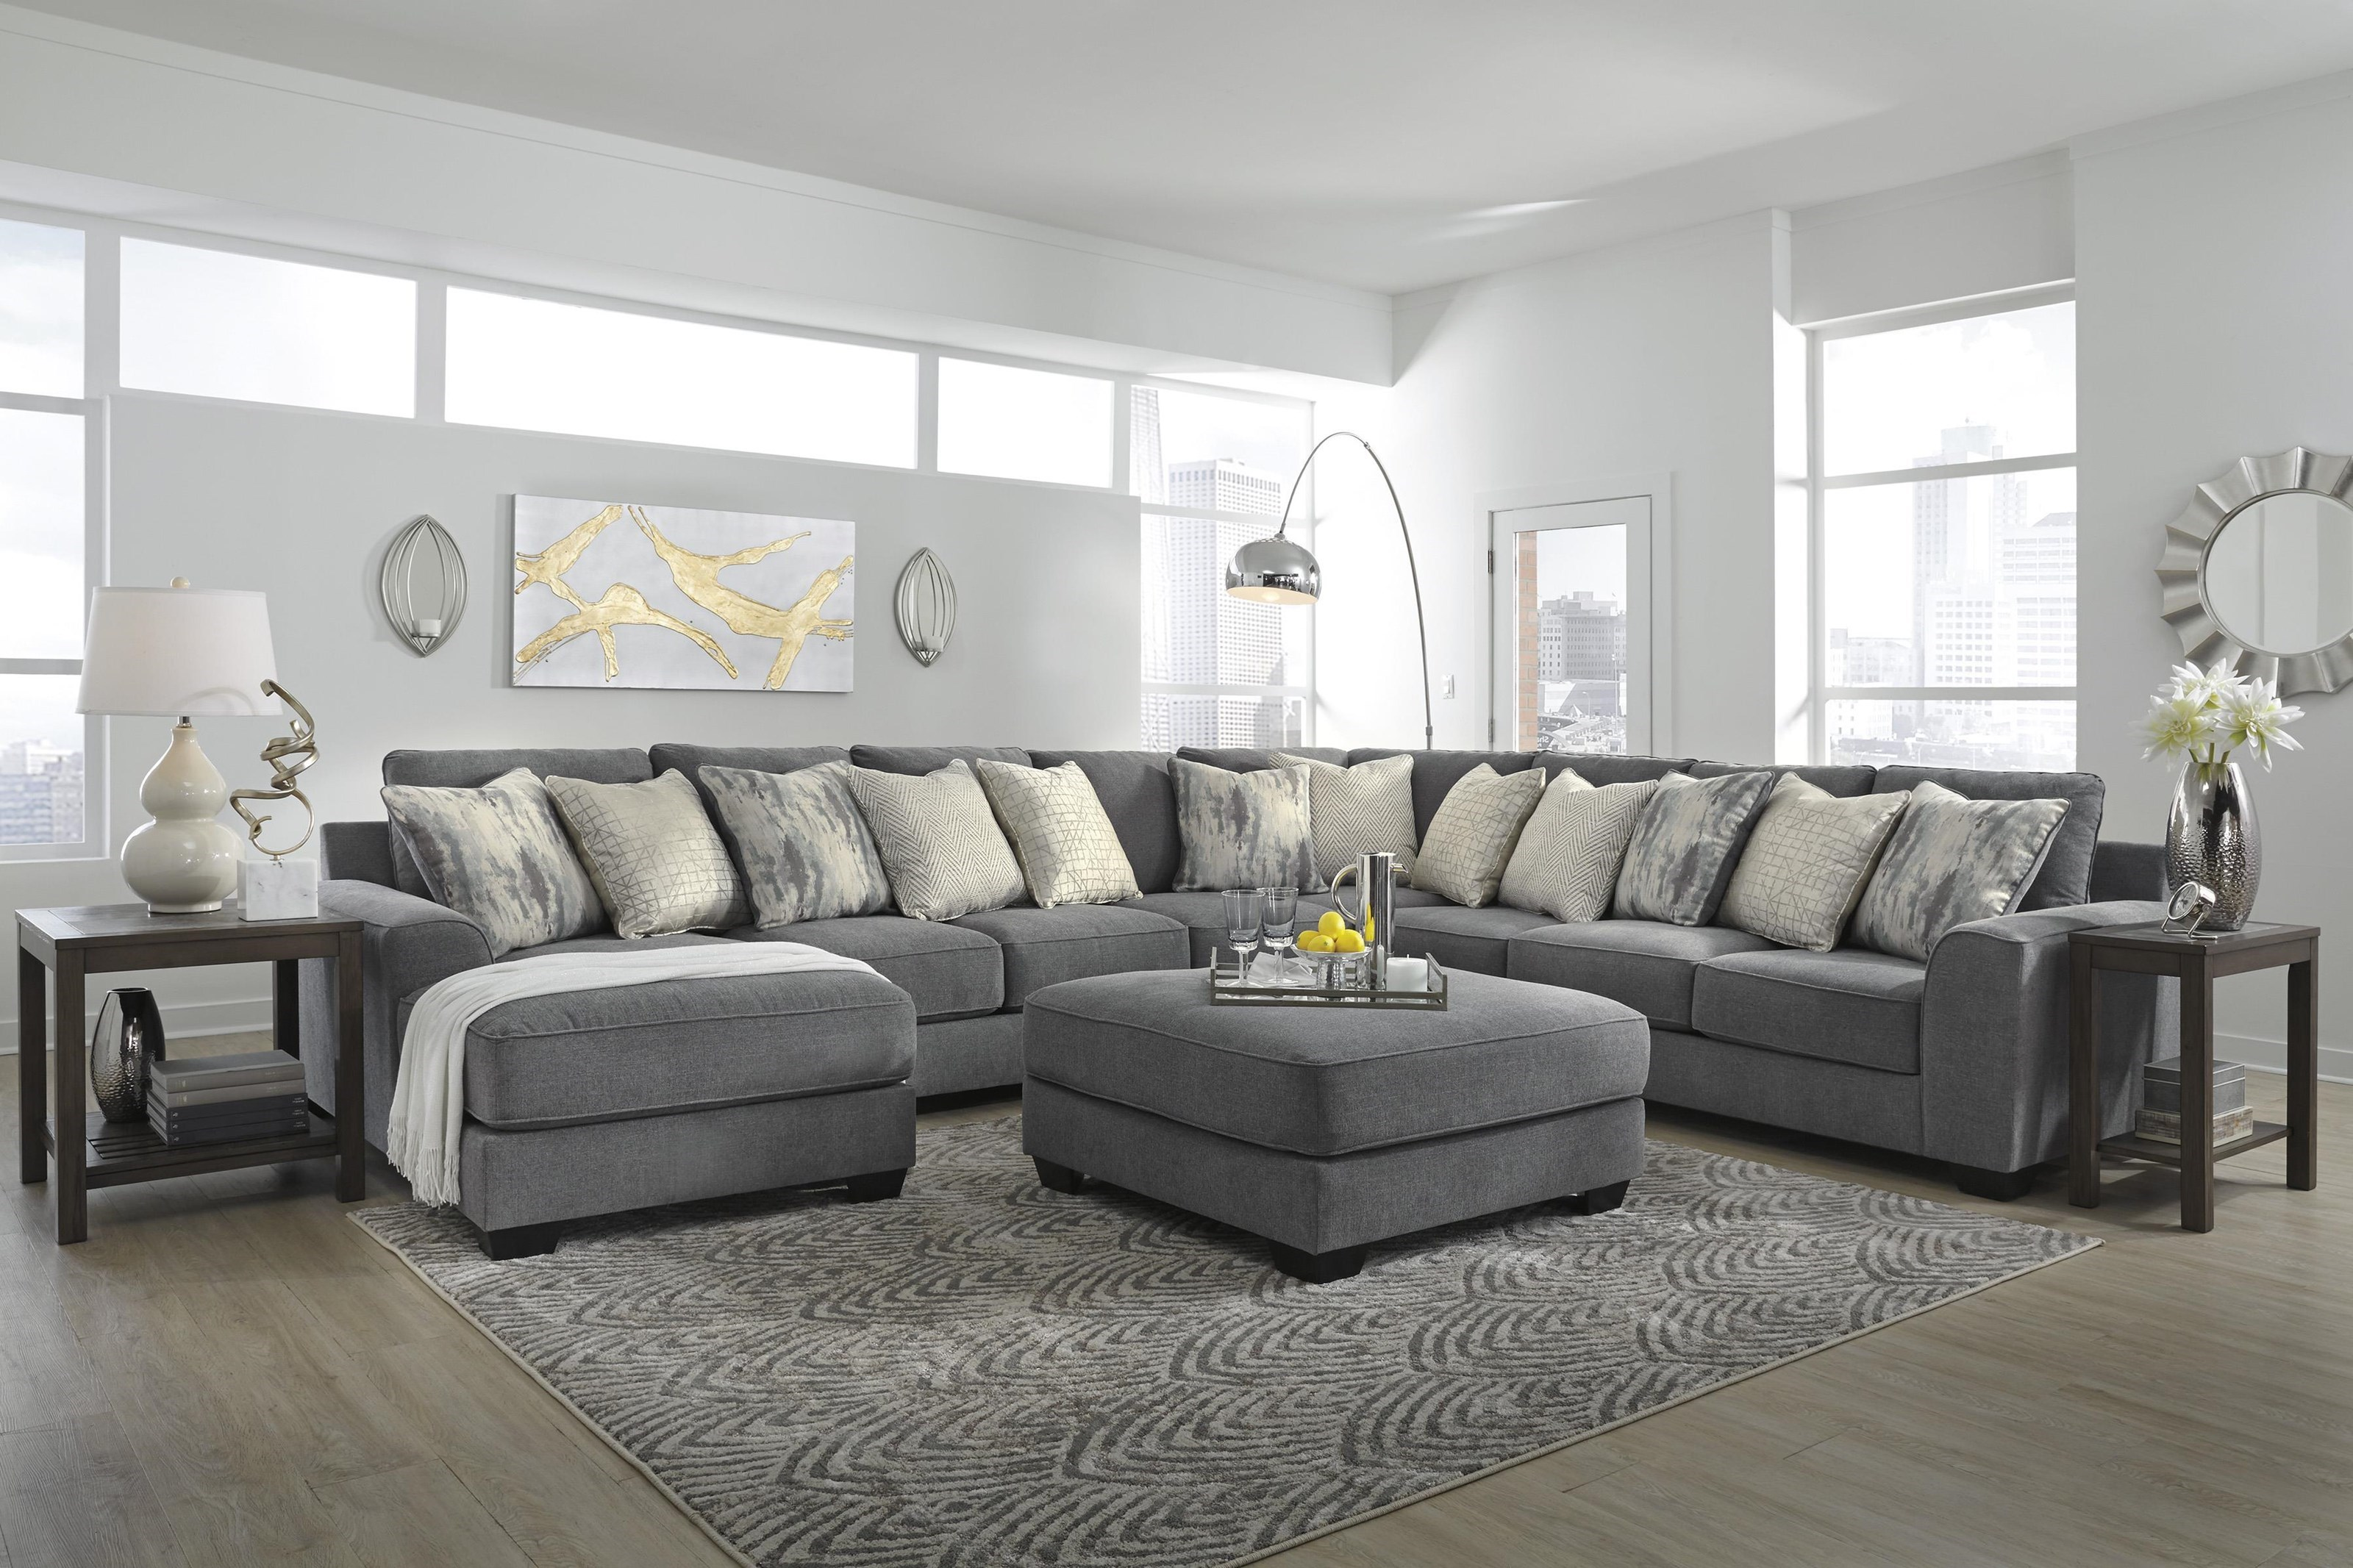 castano 5 piece sectional with ottoman